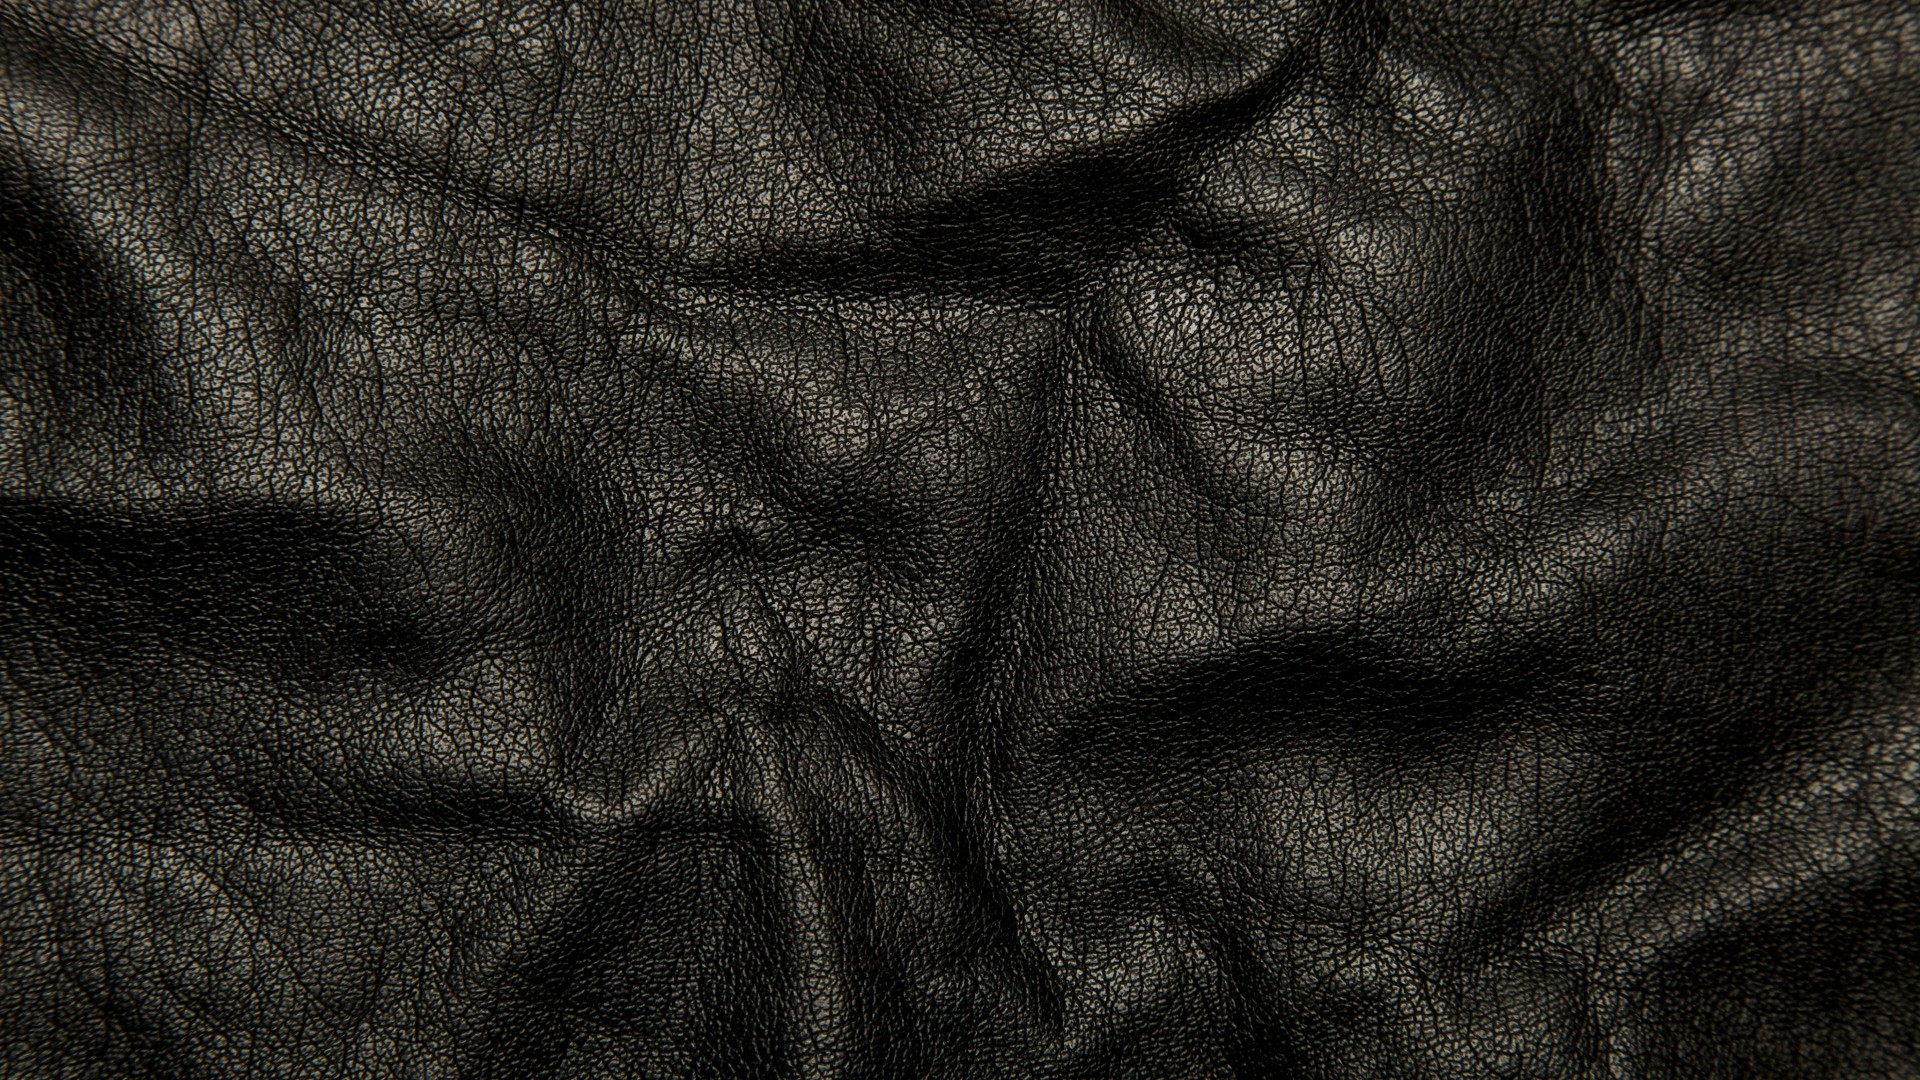 Preview wallpaper leather, black, background, texture, wrinkles, cracks  1920×1080